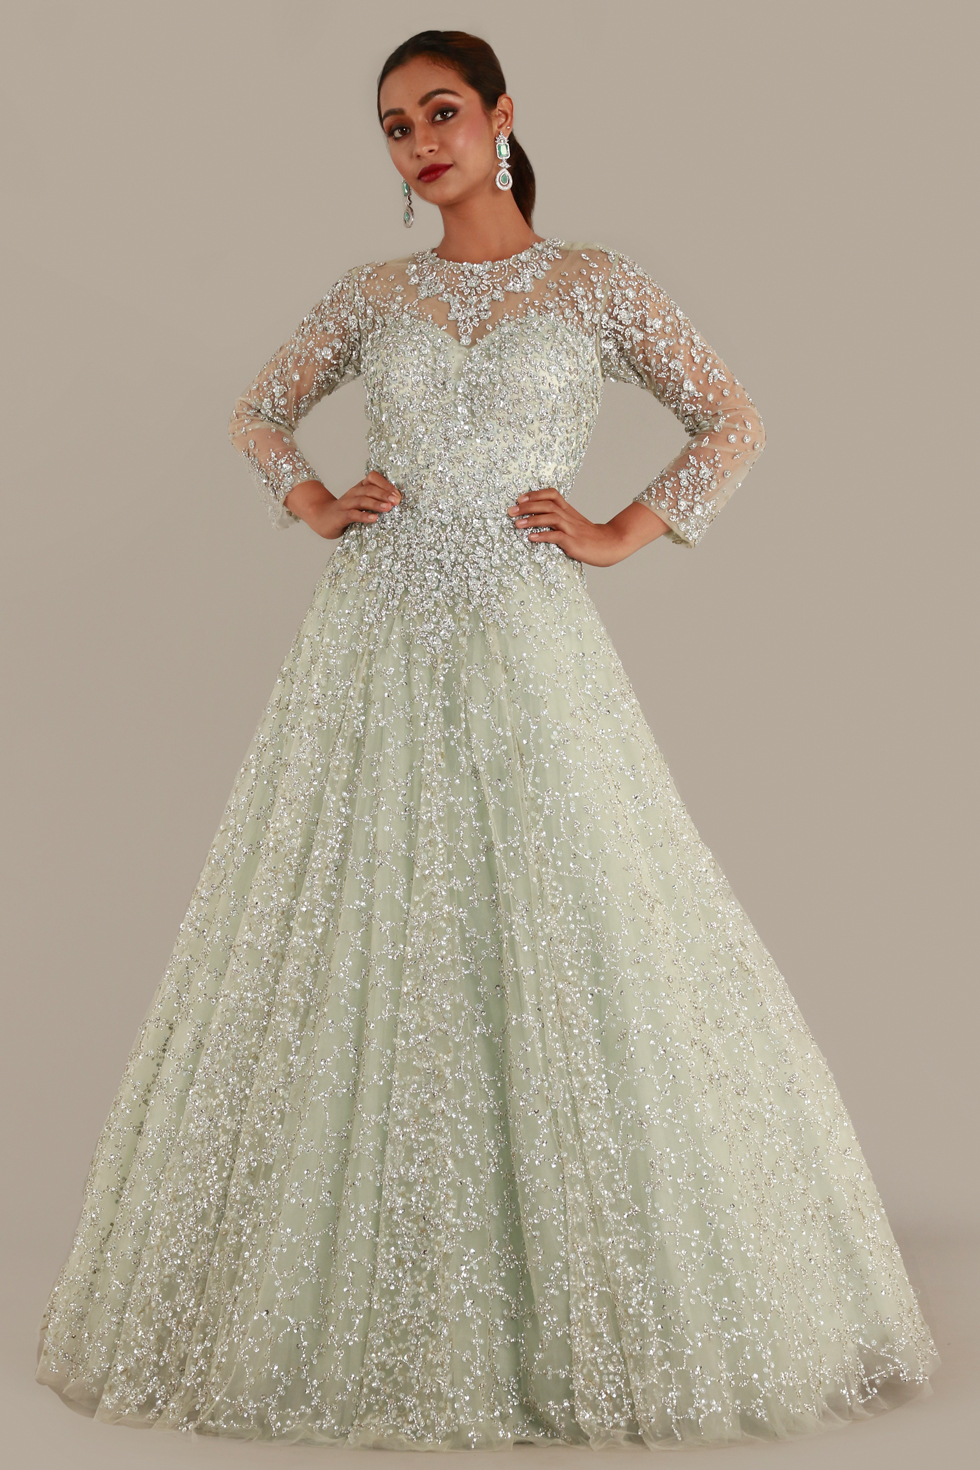 Pastel Green Tulle Gown with Illusion Sleeves